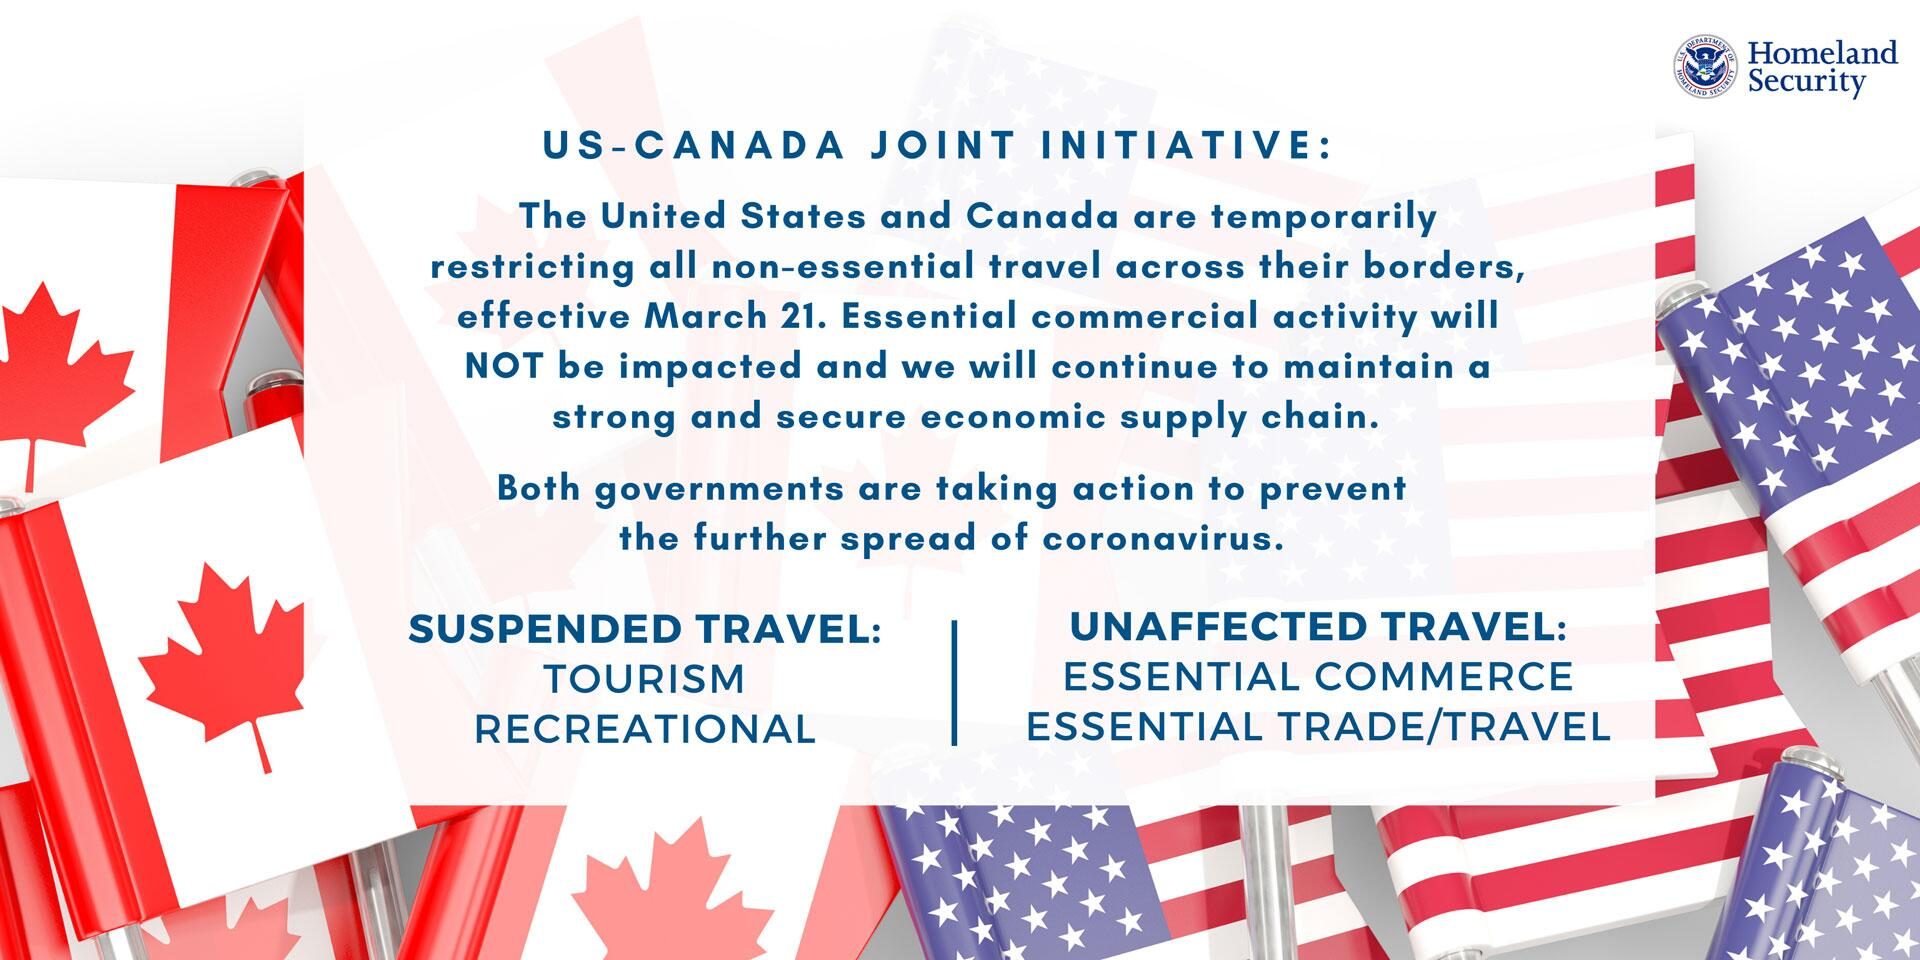 US-Canada Joint Initiative: The United States and Canada are temporarily restricting all non-essential travel across their borders, effective March 21. Essential commercial activity will NOT be impacted and we will continue to maintain a strong and secure economic supply chain. Both government are taking action to prevent the further spread of coronavirus. | Suspended Travel: Tourism, Recreational | Unaffected Travel: Essential Commerce, Essential Trade/Travel